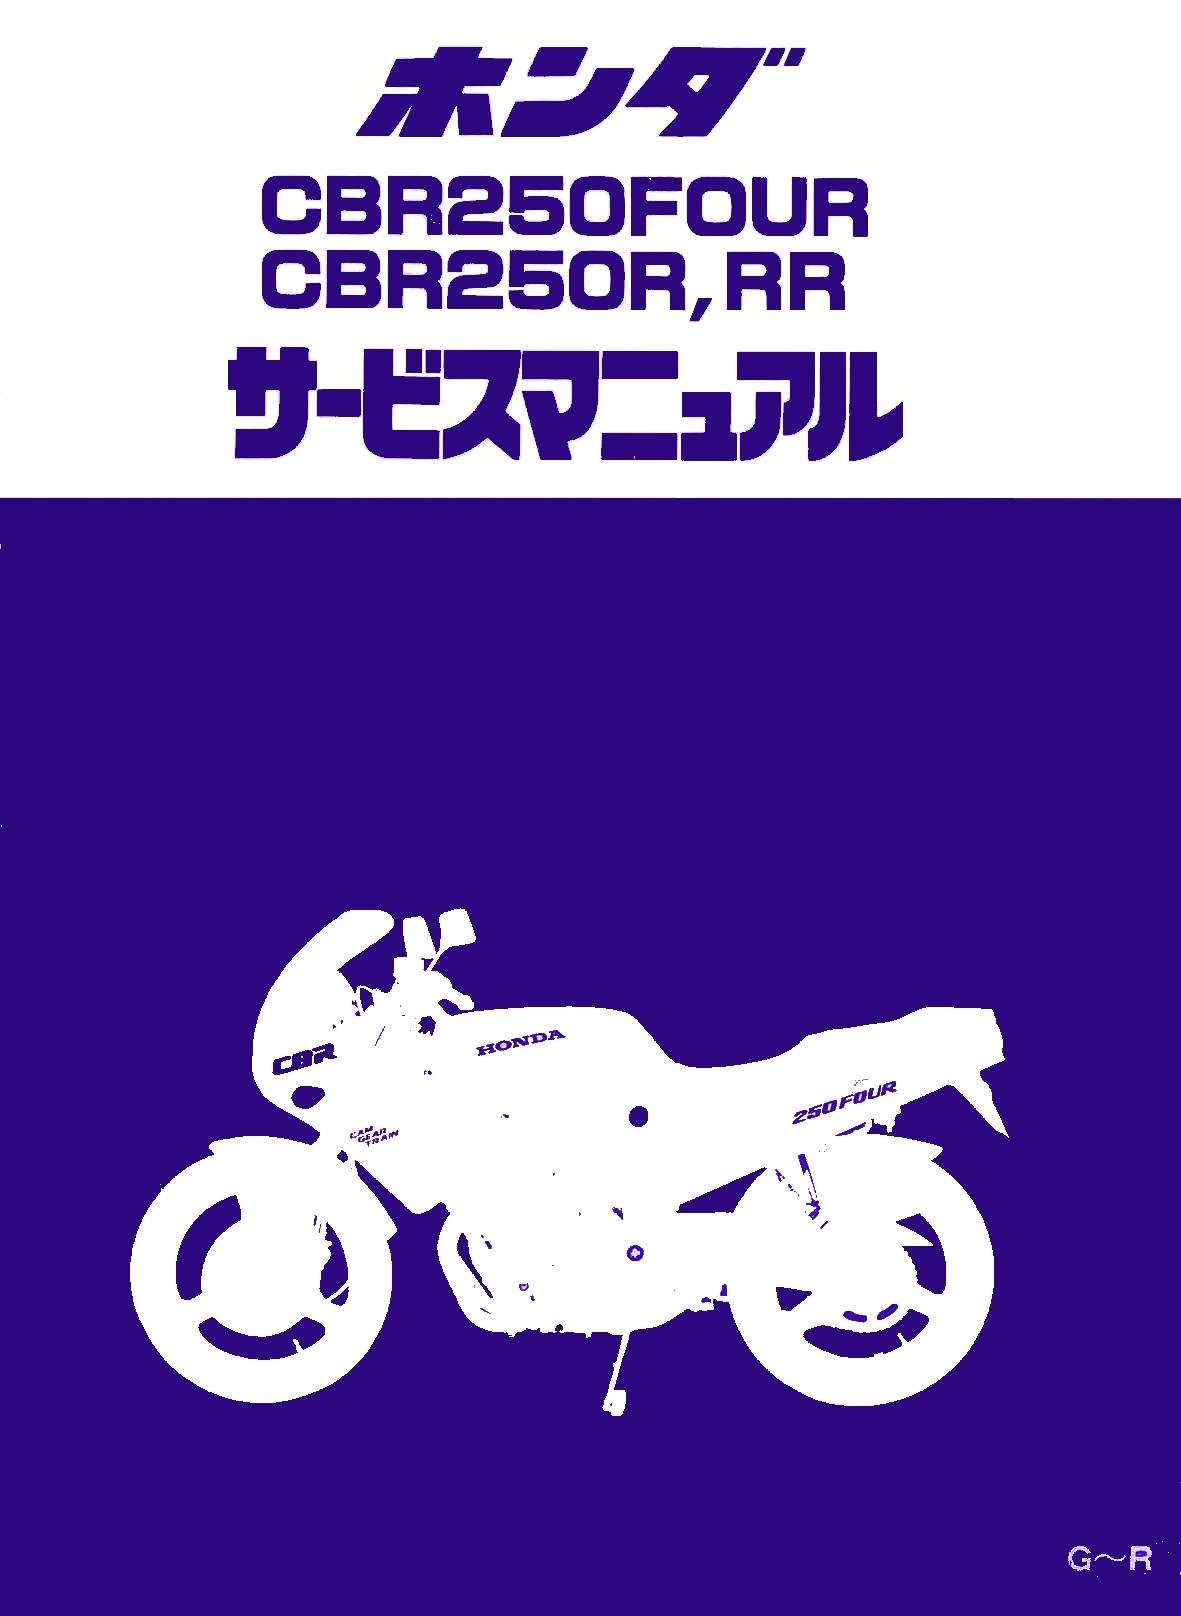 Workshop manual for Honda CBR250R (1987-1989)